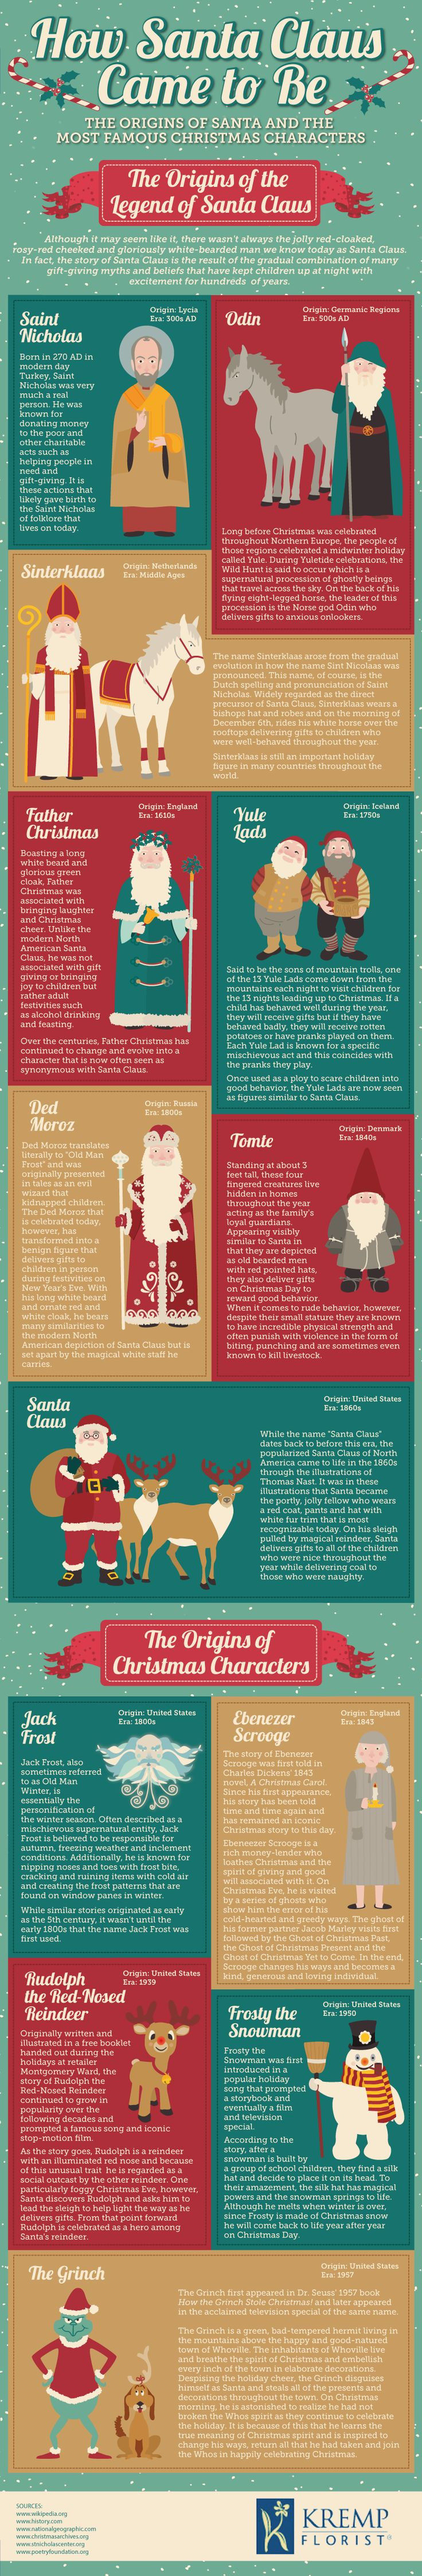 How Santa Came to Be #infographic #Santa #Christmas